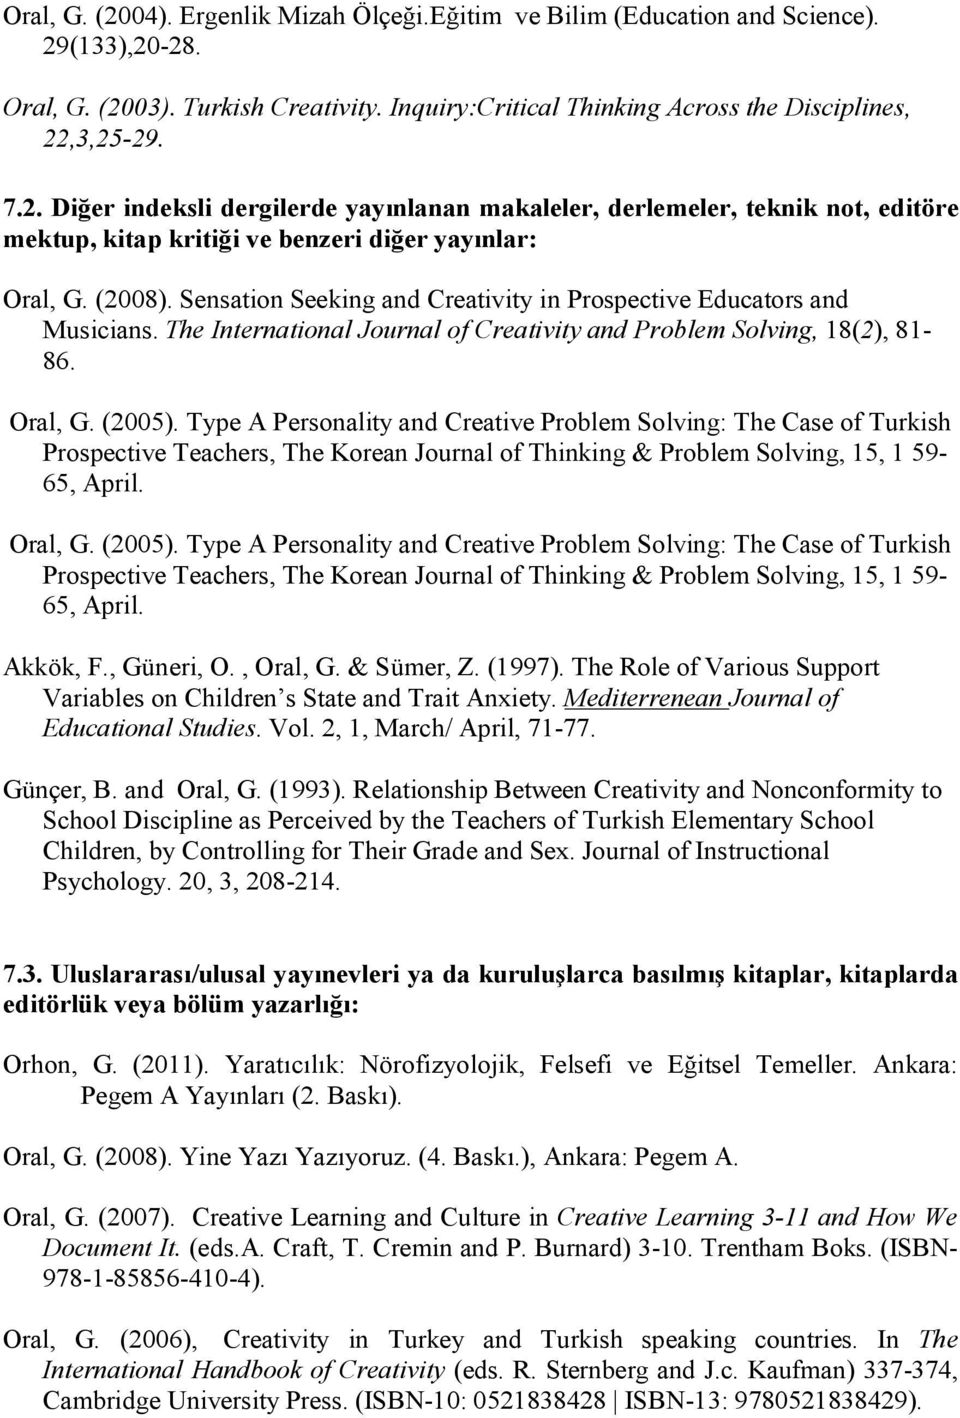 Type A Personality and Creative Problem Solving: The Case of Turkish Prospective Teachers, The Korean Journal of Thinking & Problem Solving, 15, 1 59-65, April. Oral, G. (2005).